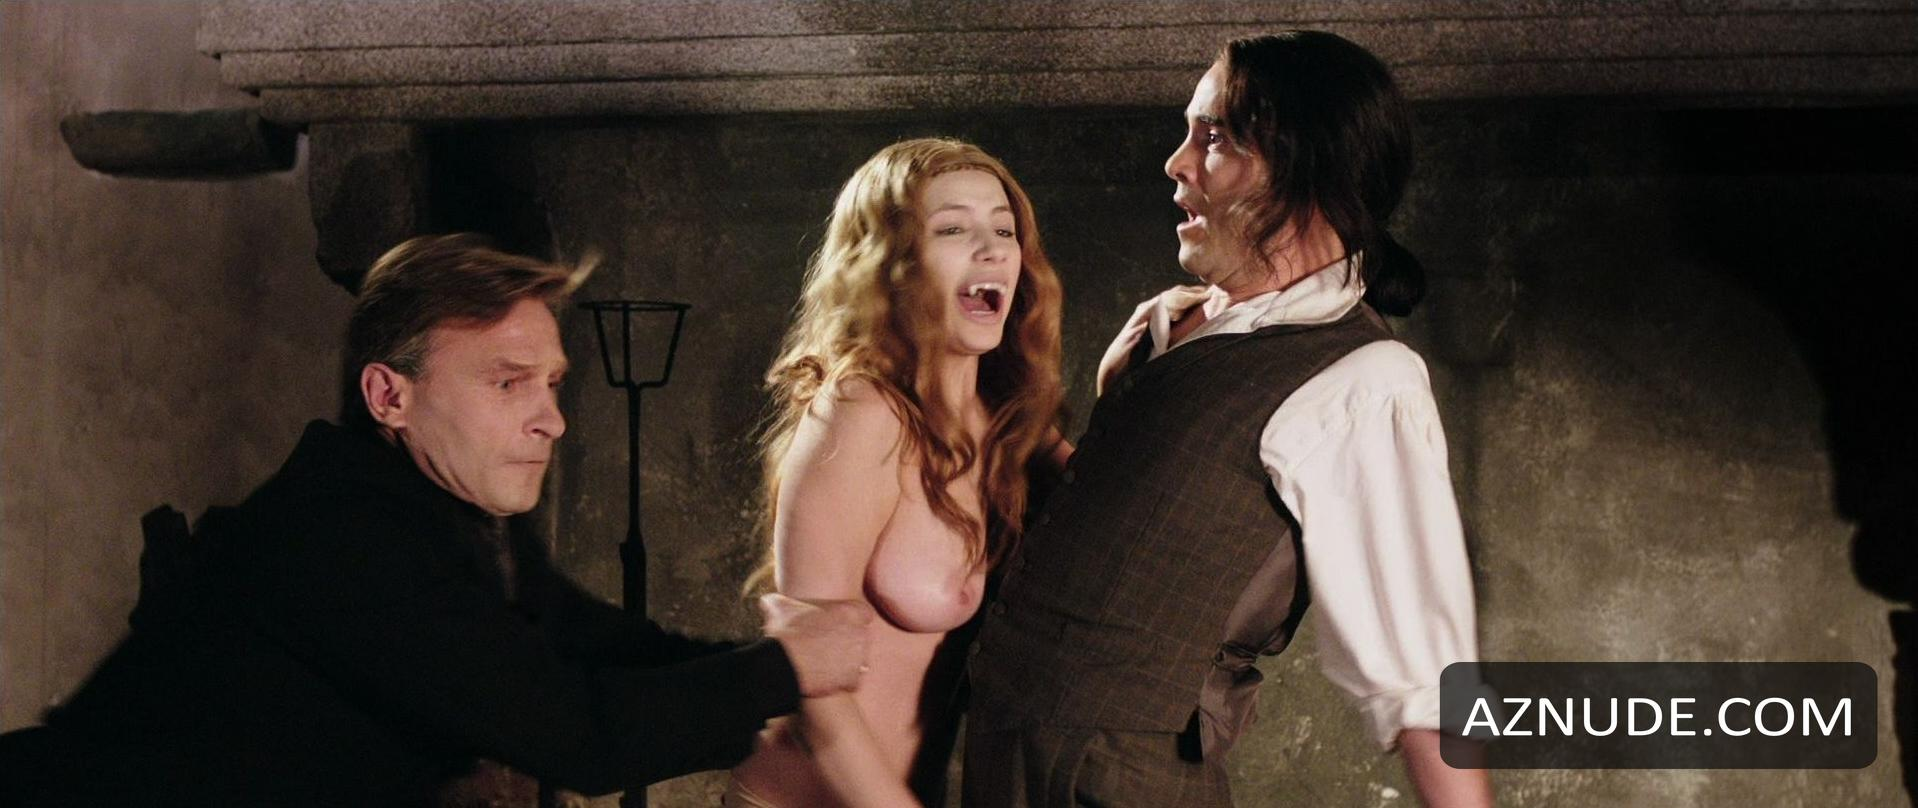 Movies nude in dracula's castle